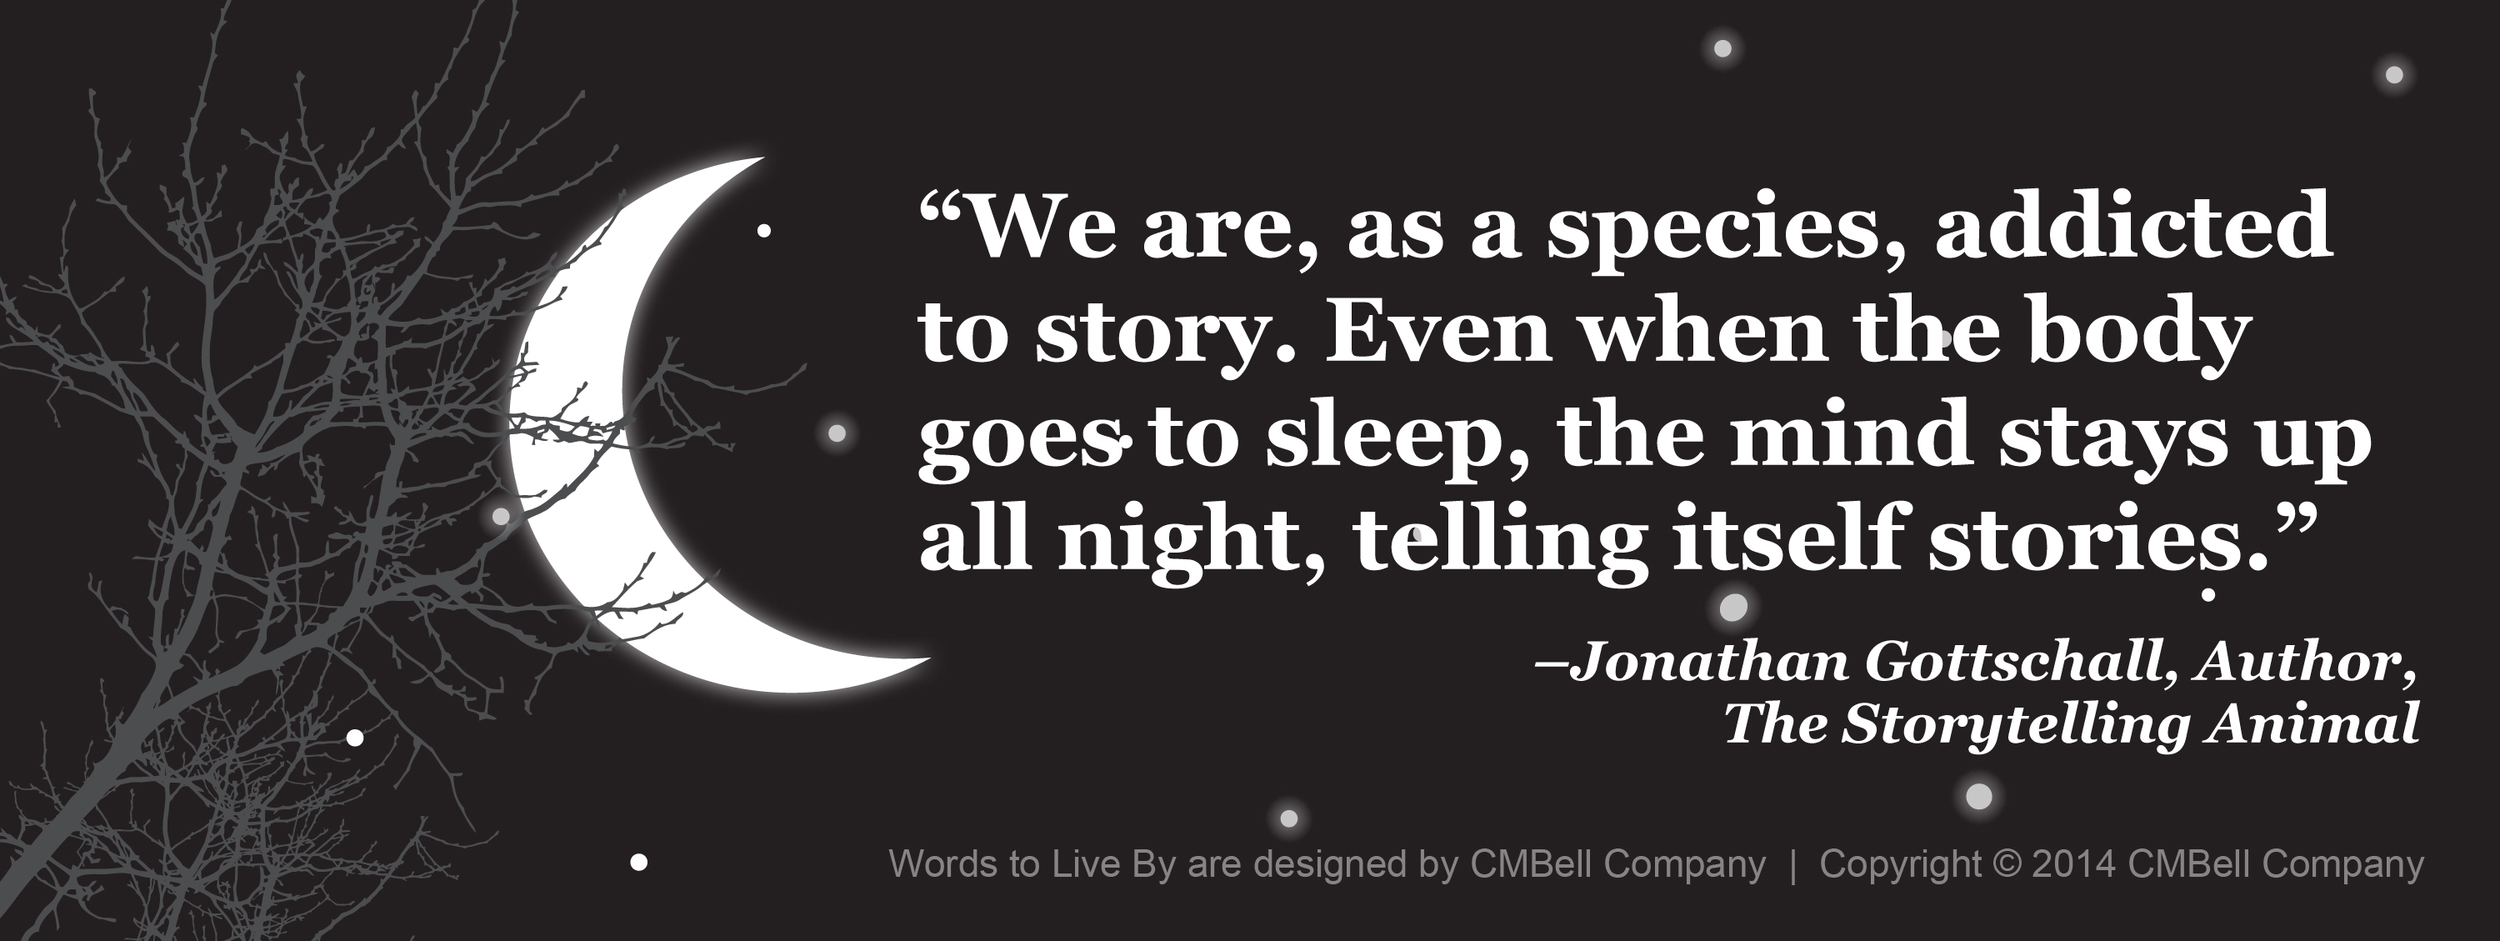 nightquote.png